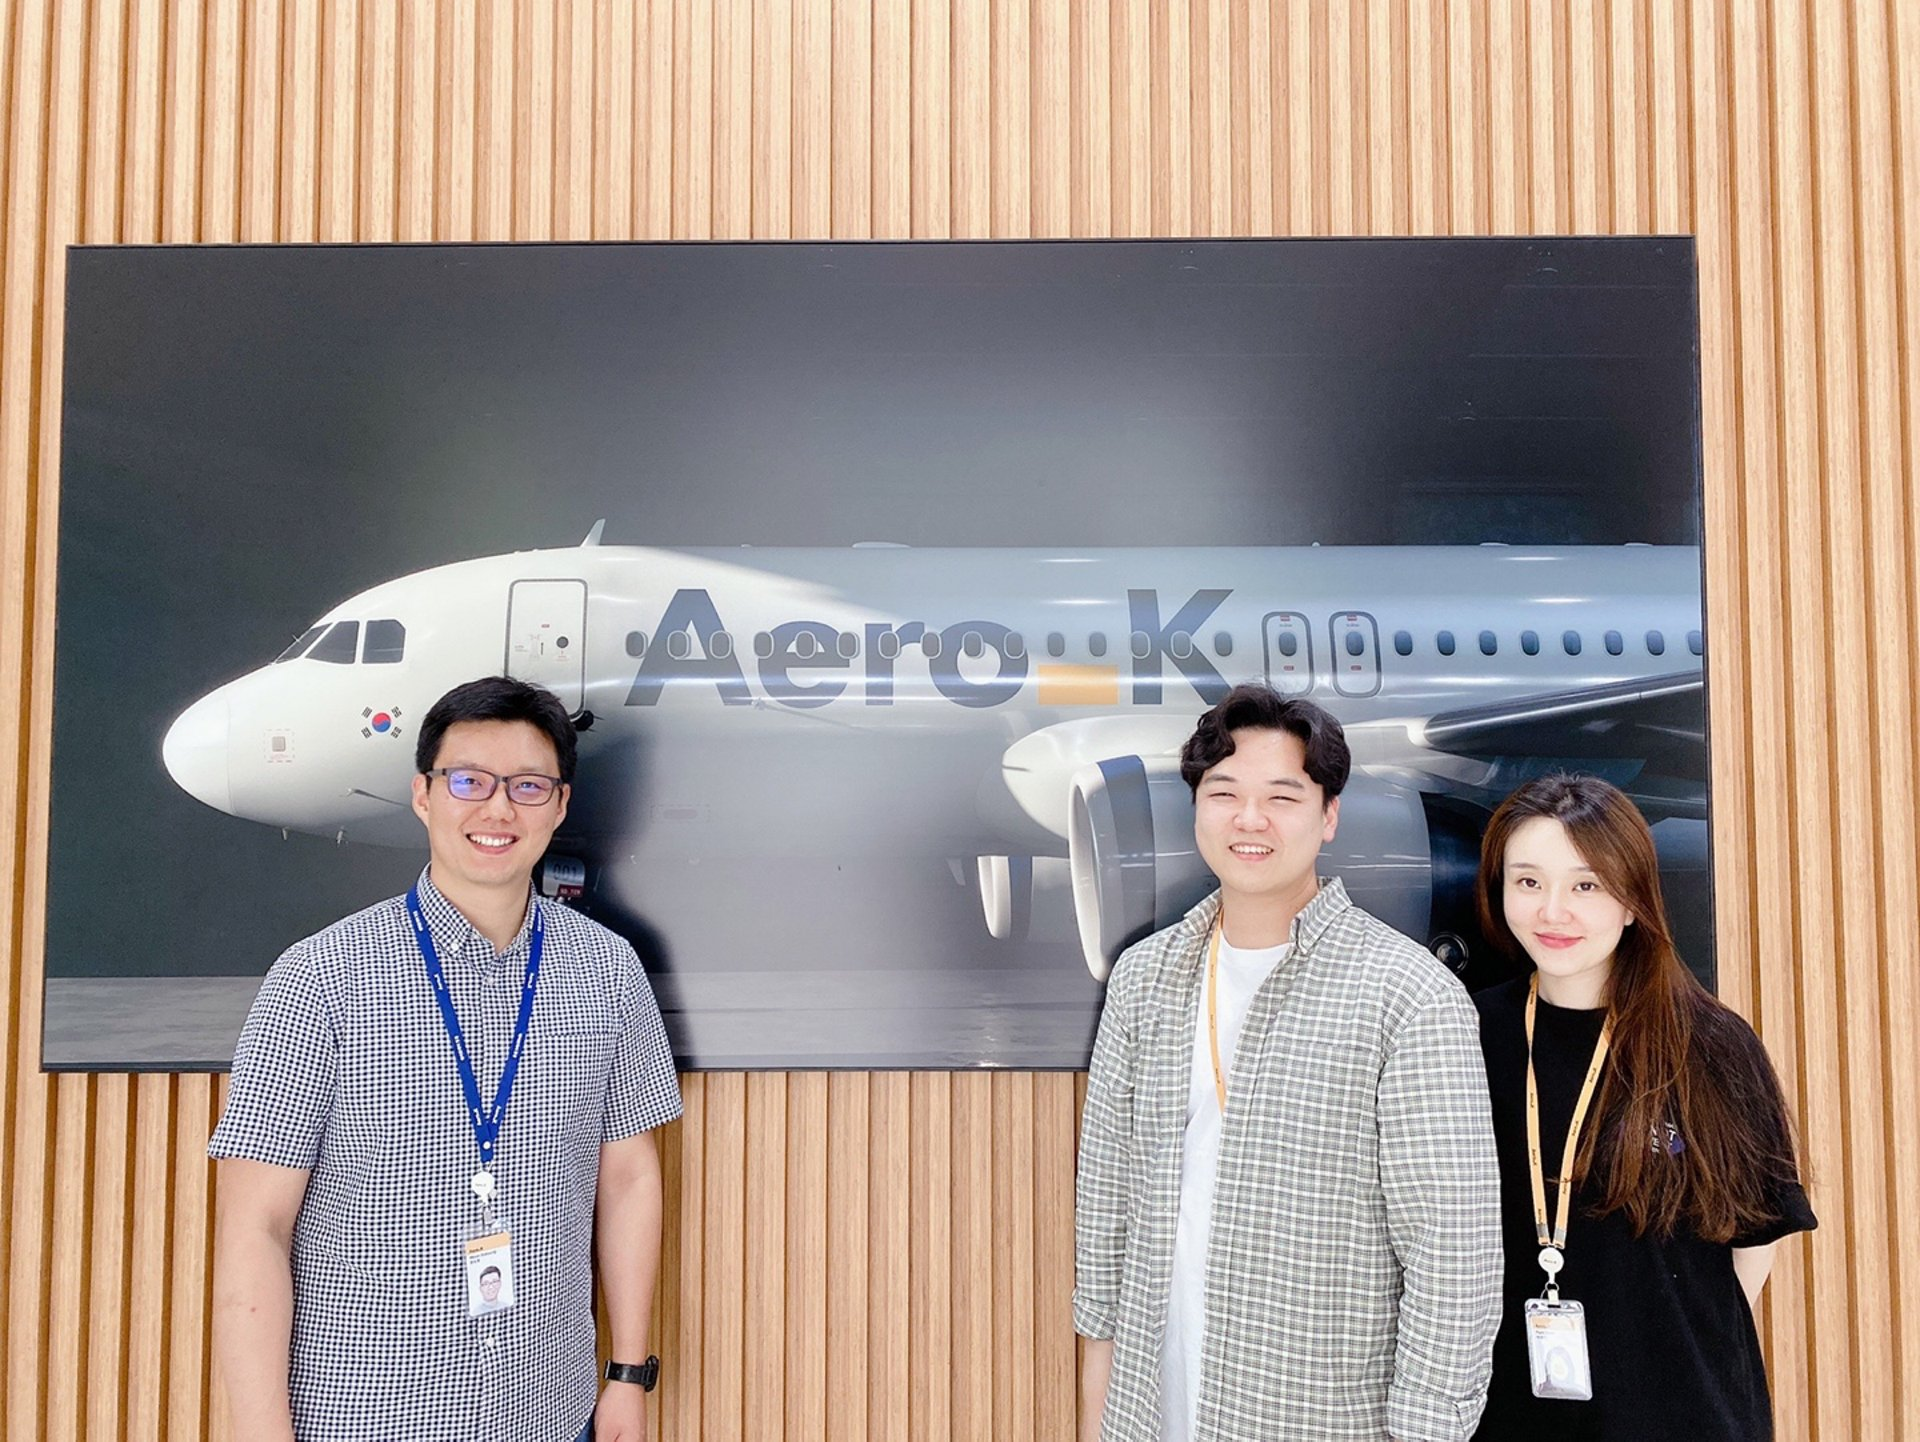 Fuel Manager and Flight Operations Engineering Team of Aero K airlines, who will be leading the Fuel Optimization Project with NAVBLUE